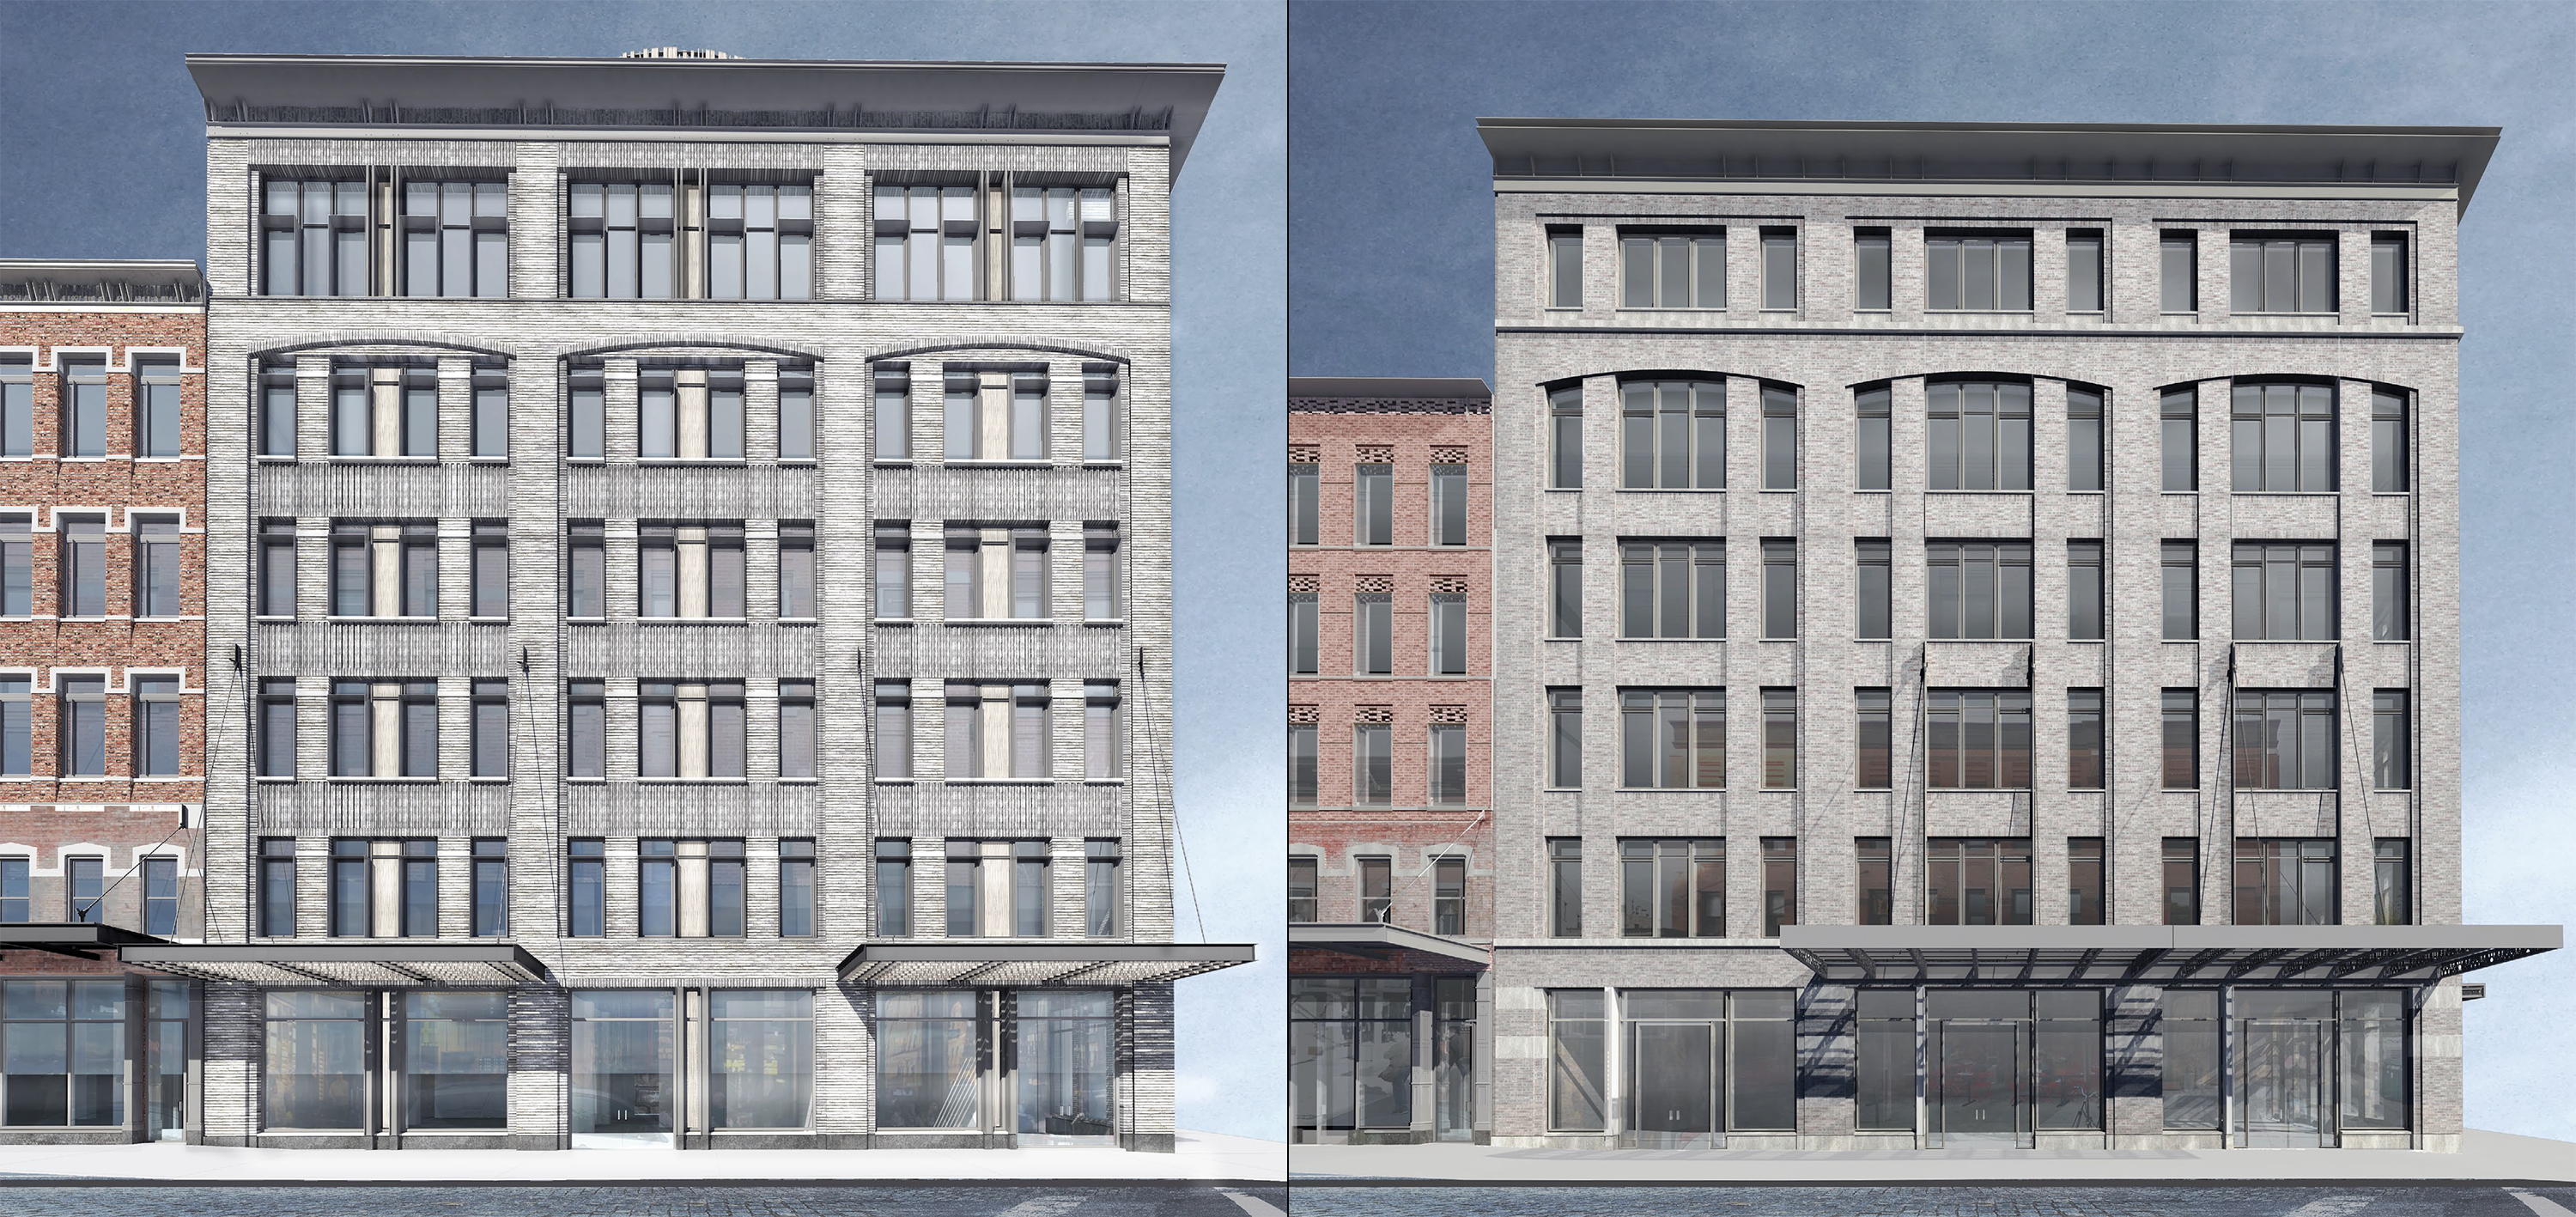 70-74 Gansevoort Street, previous proposal and current proposal